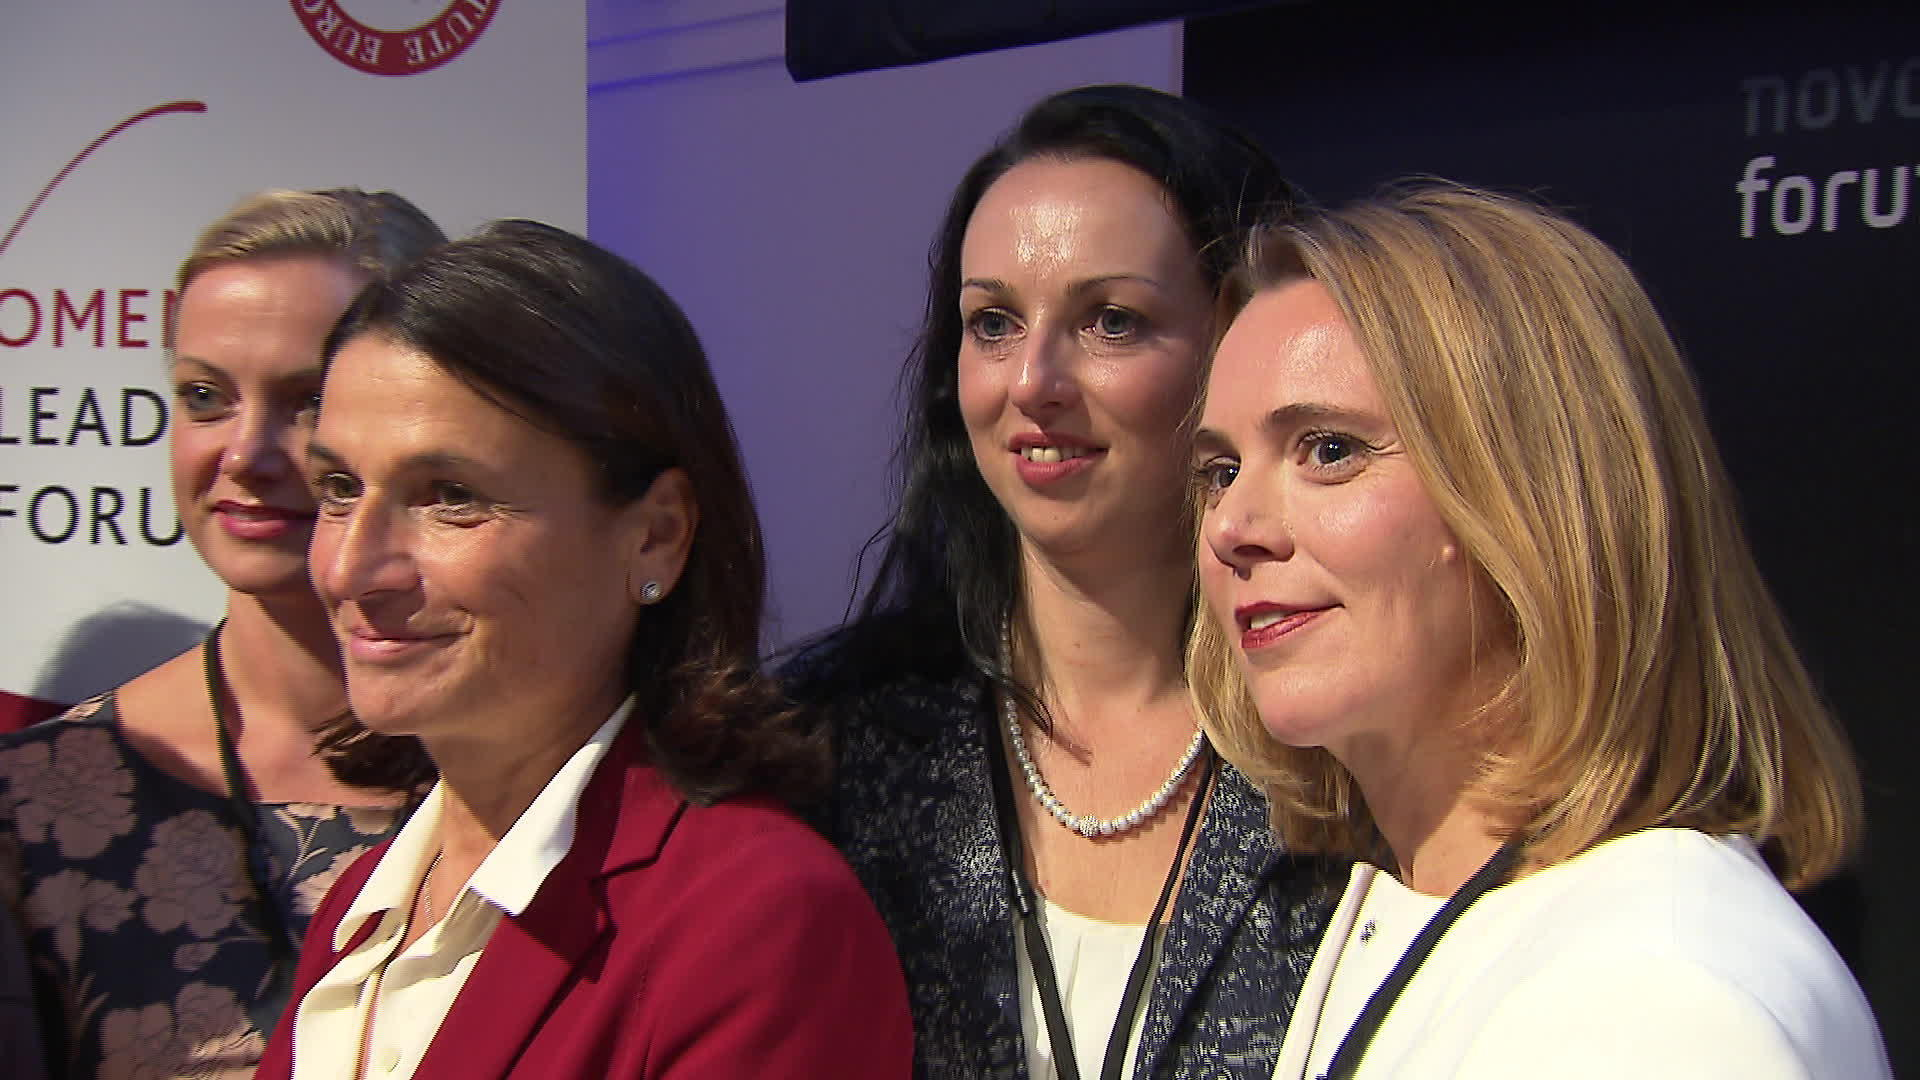 Geballte Frauenpower – Das Women Leadership Forum in Wien